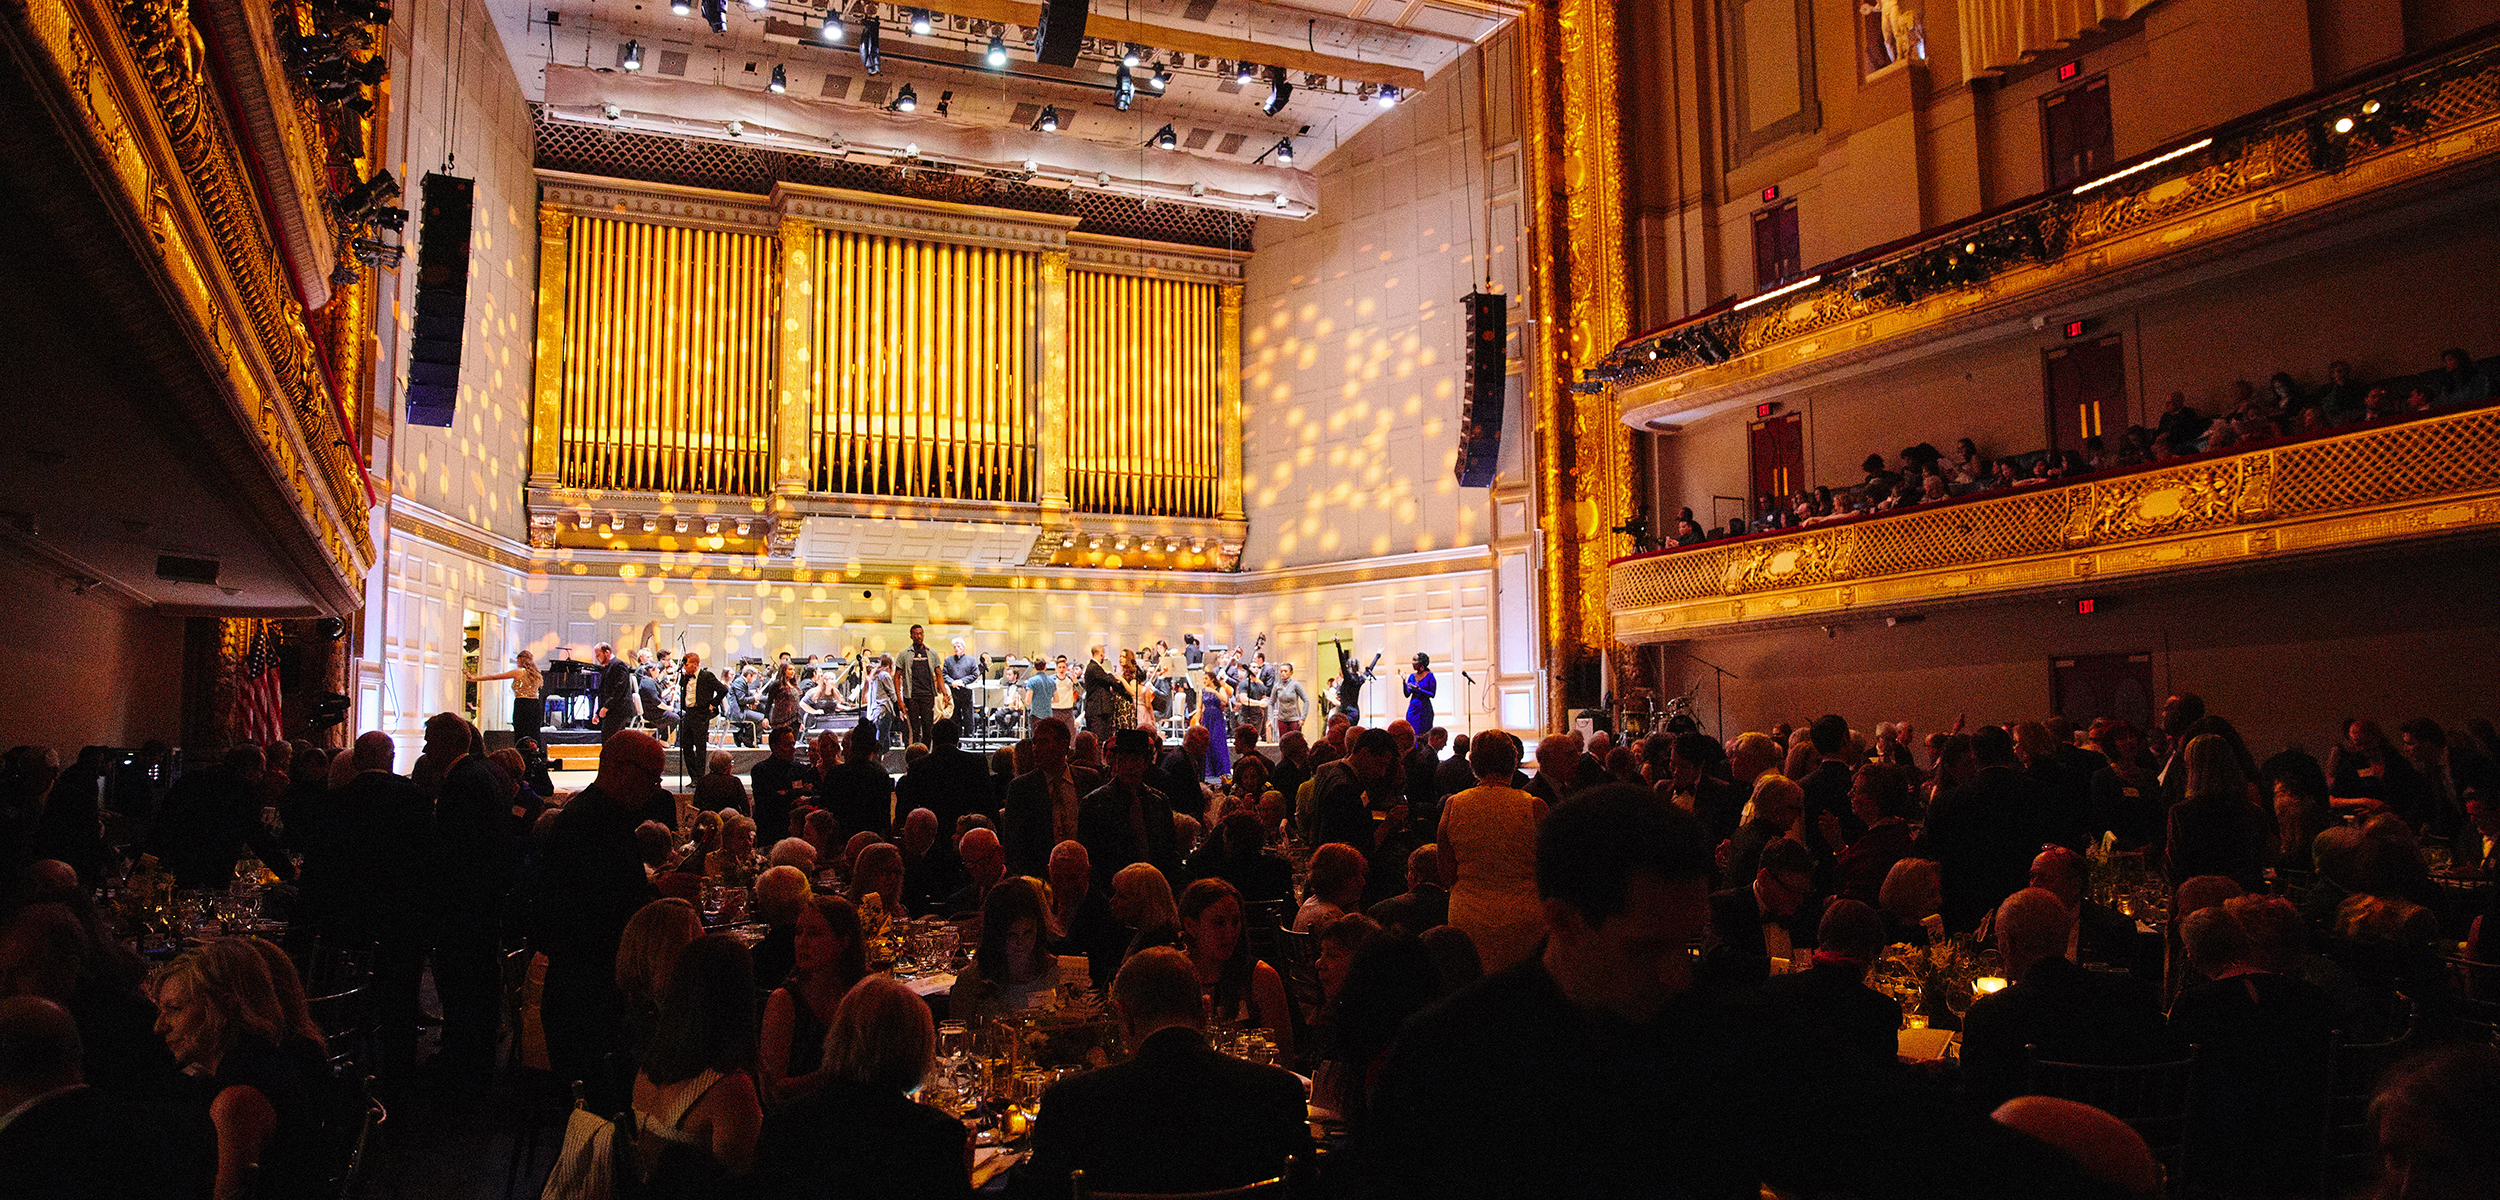 06_AE-Events_Boston Symphony Orchestra.jpg